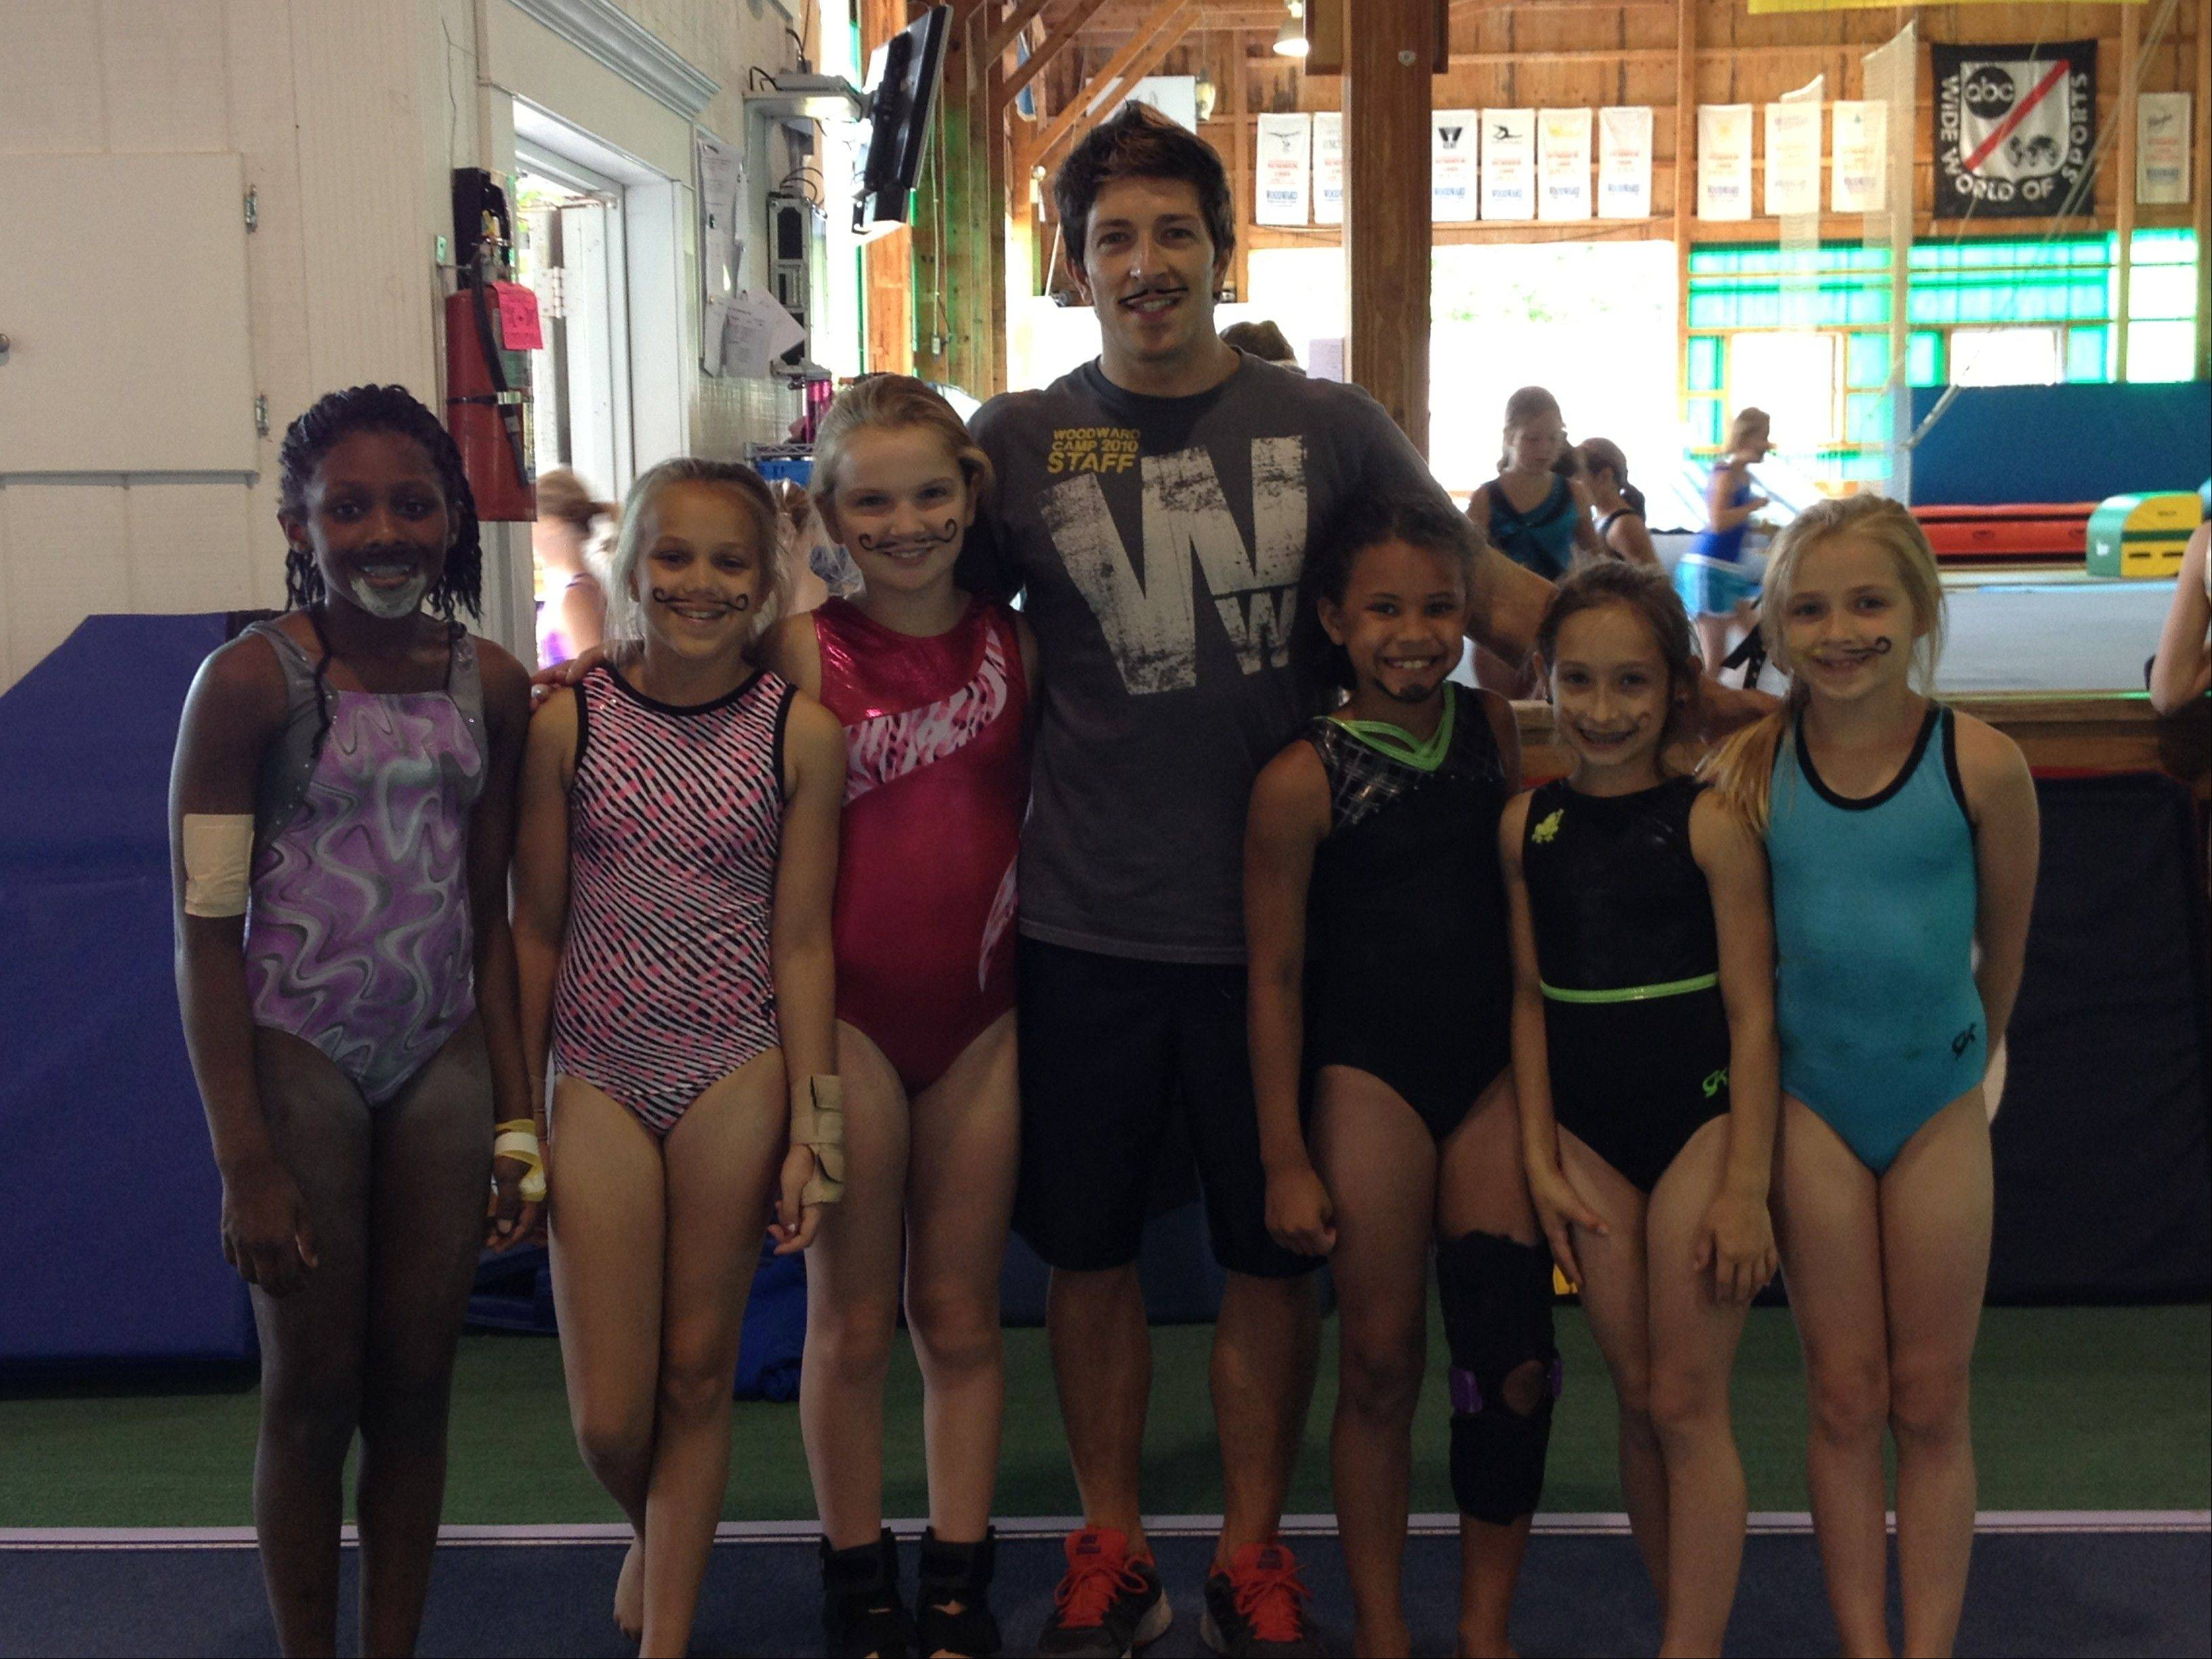 """American Ninja Warrior"" competitor Andrew Lowes of Grayslake poses on ""Mustache Day"" with some of the gymnasts he coaches in Pennsylvania."